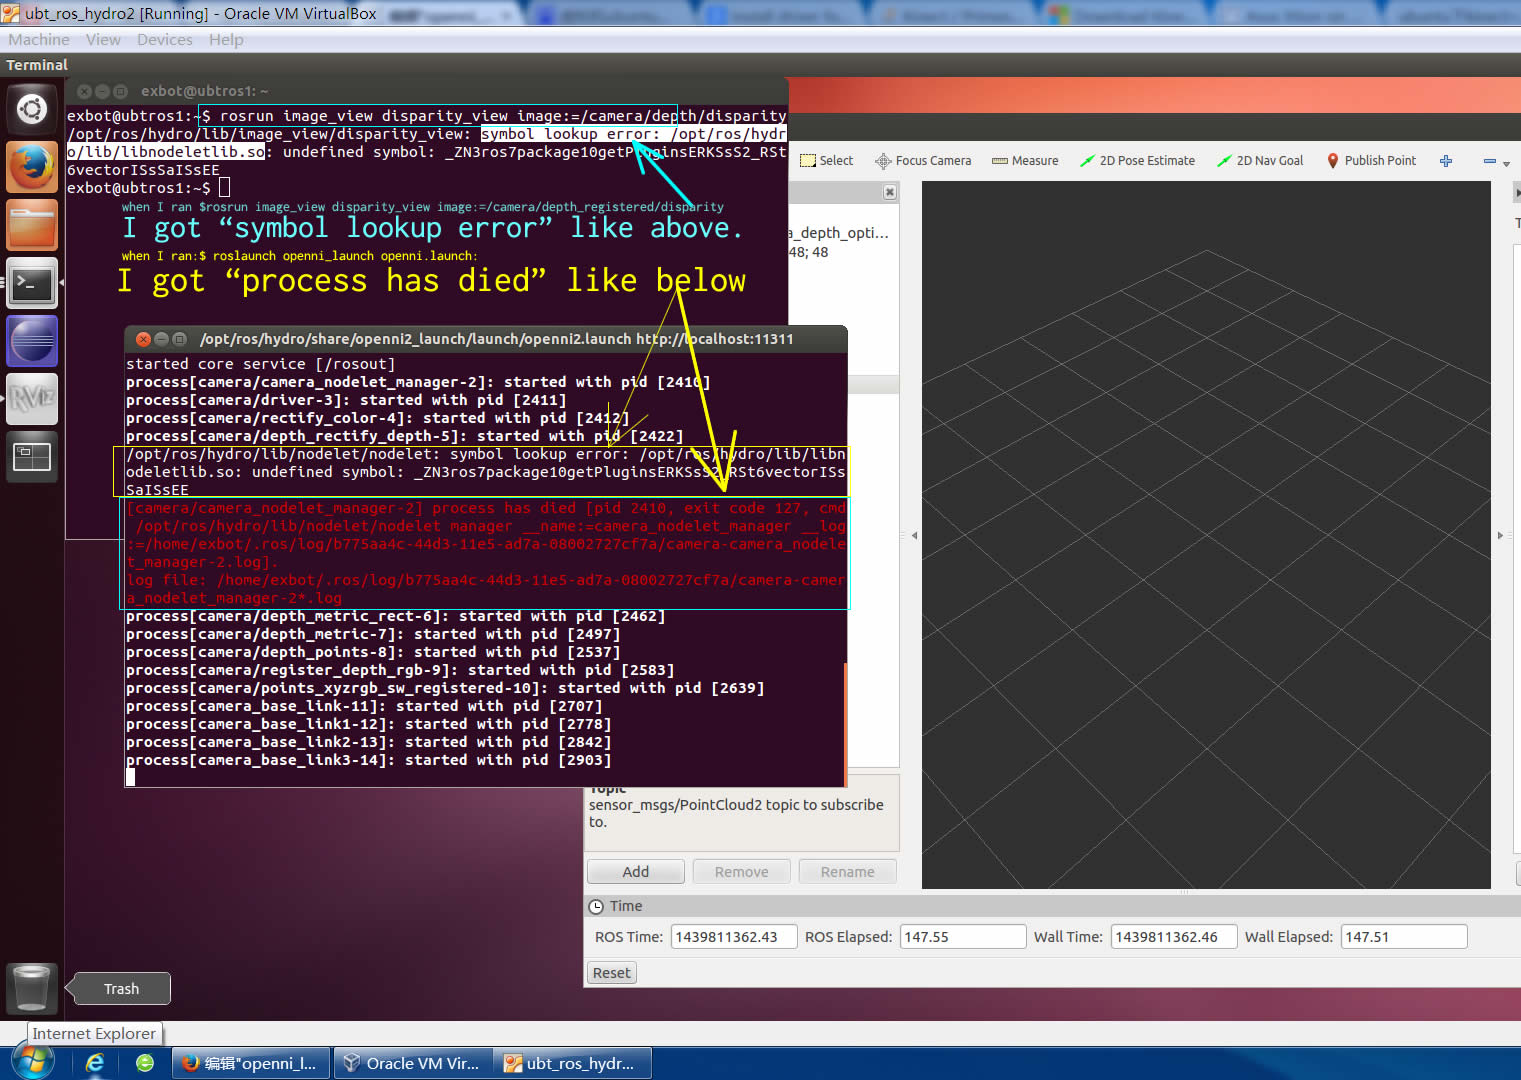 solved]cannot use kinect on Ubt12 04 in virtual box - ROS